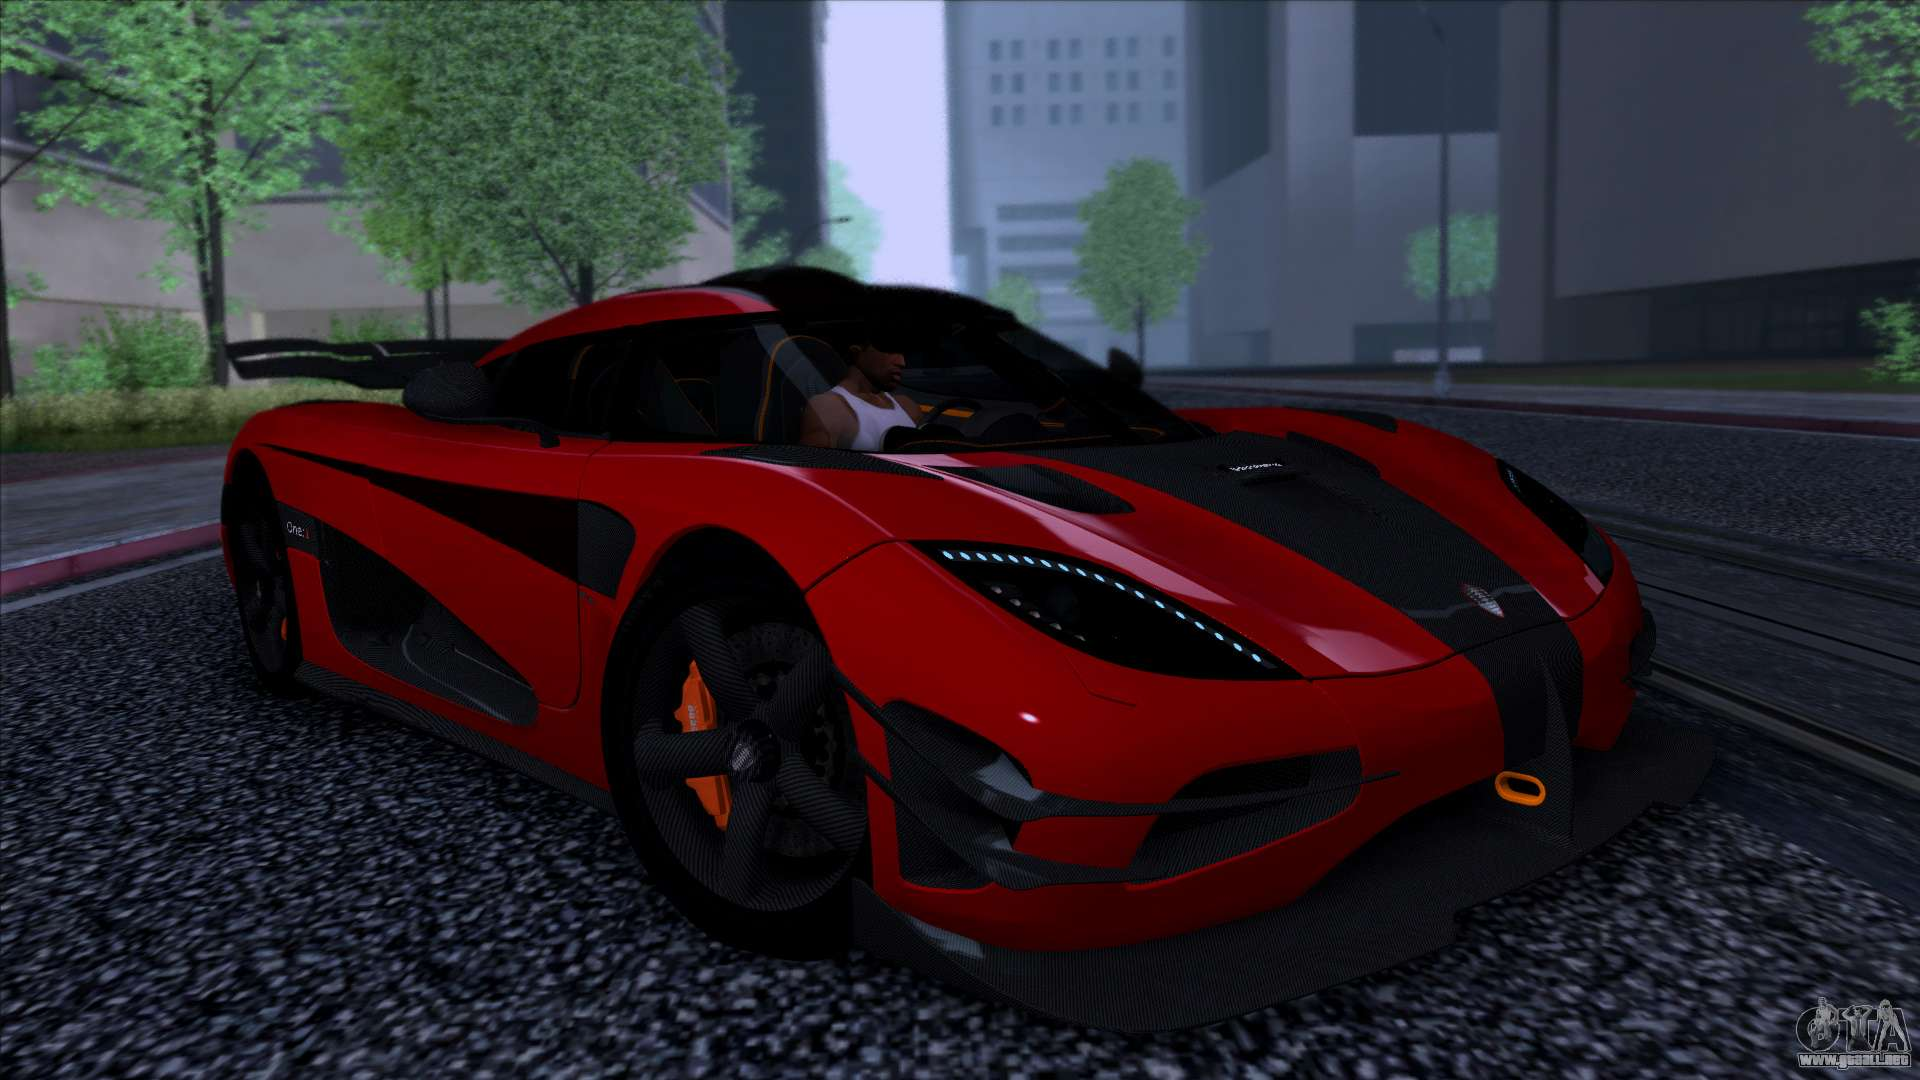 koenigsegg mod gta 5 with 52977 Koenigsegg One1 2014 on 42710 Koenigsegg One1 Epm additionally 1936 Ford Pickup Ratrod Style together with Asphalt 8 Traffic Pack Final Version together with 42710 Koenigsegg One1 Epm furthermore 64458 Nfs Rivals Koenigsegg Agera R Enforcer.